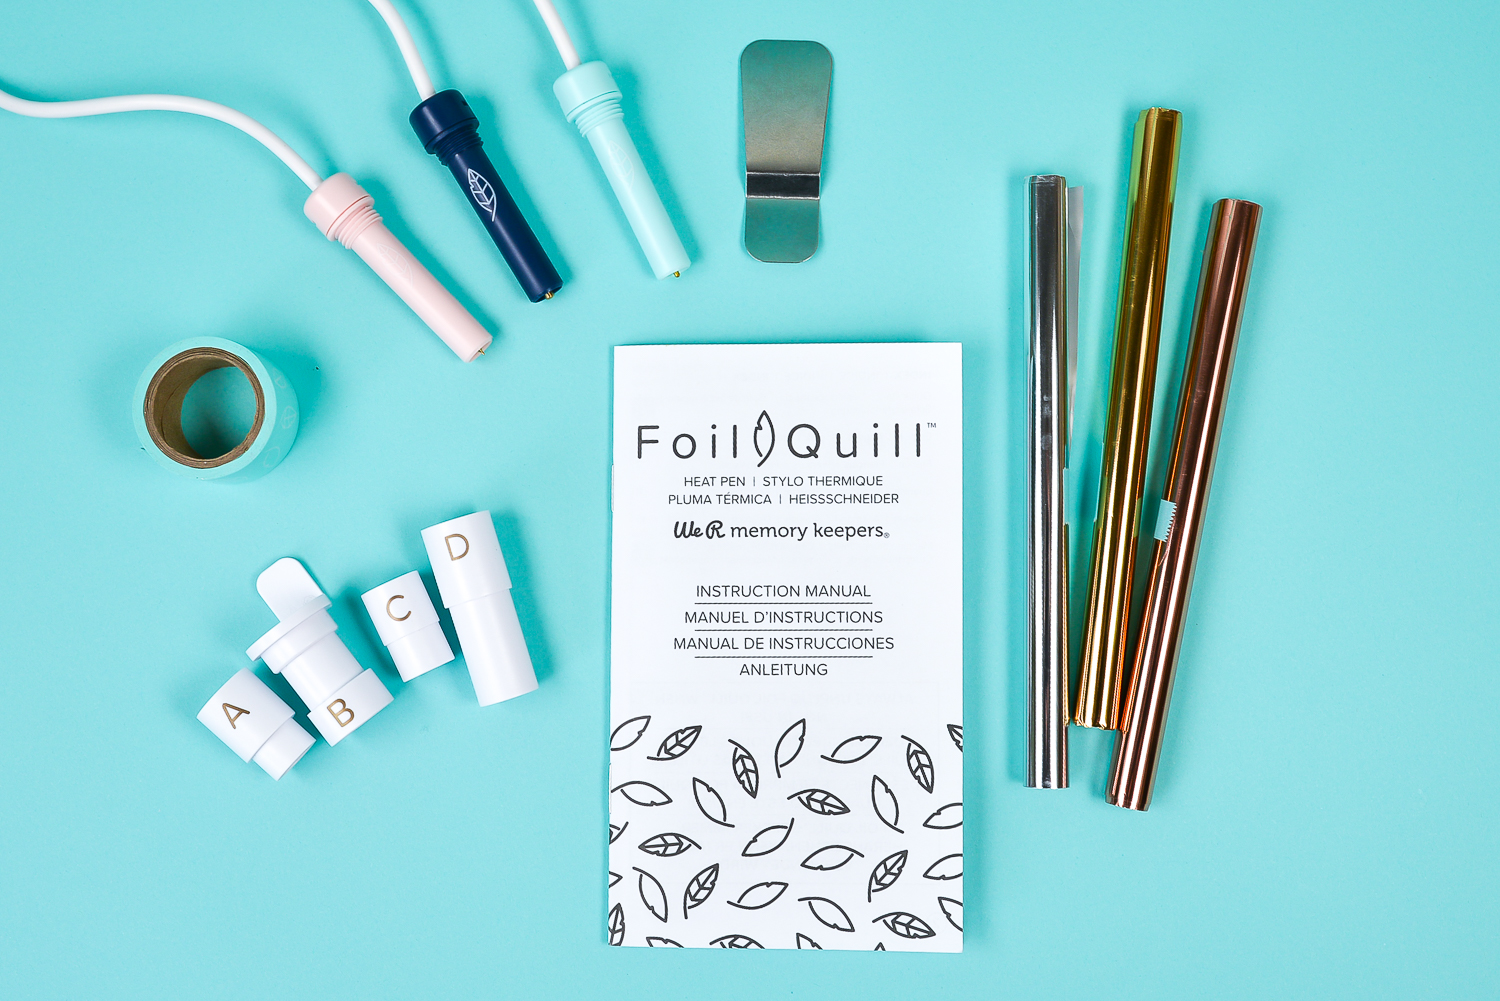 Foil Quill by We R Memory Keepers - What Comes in the Box?